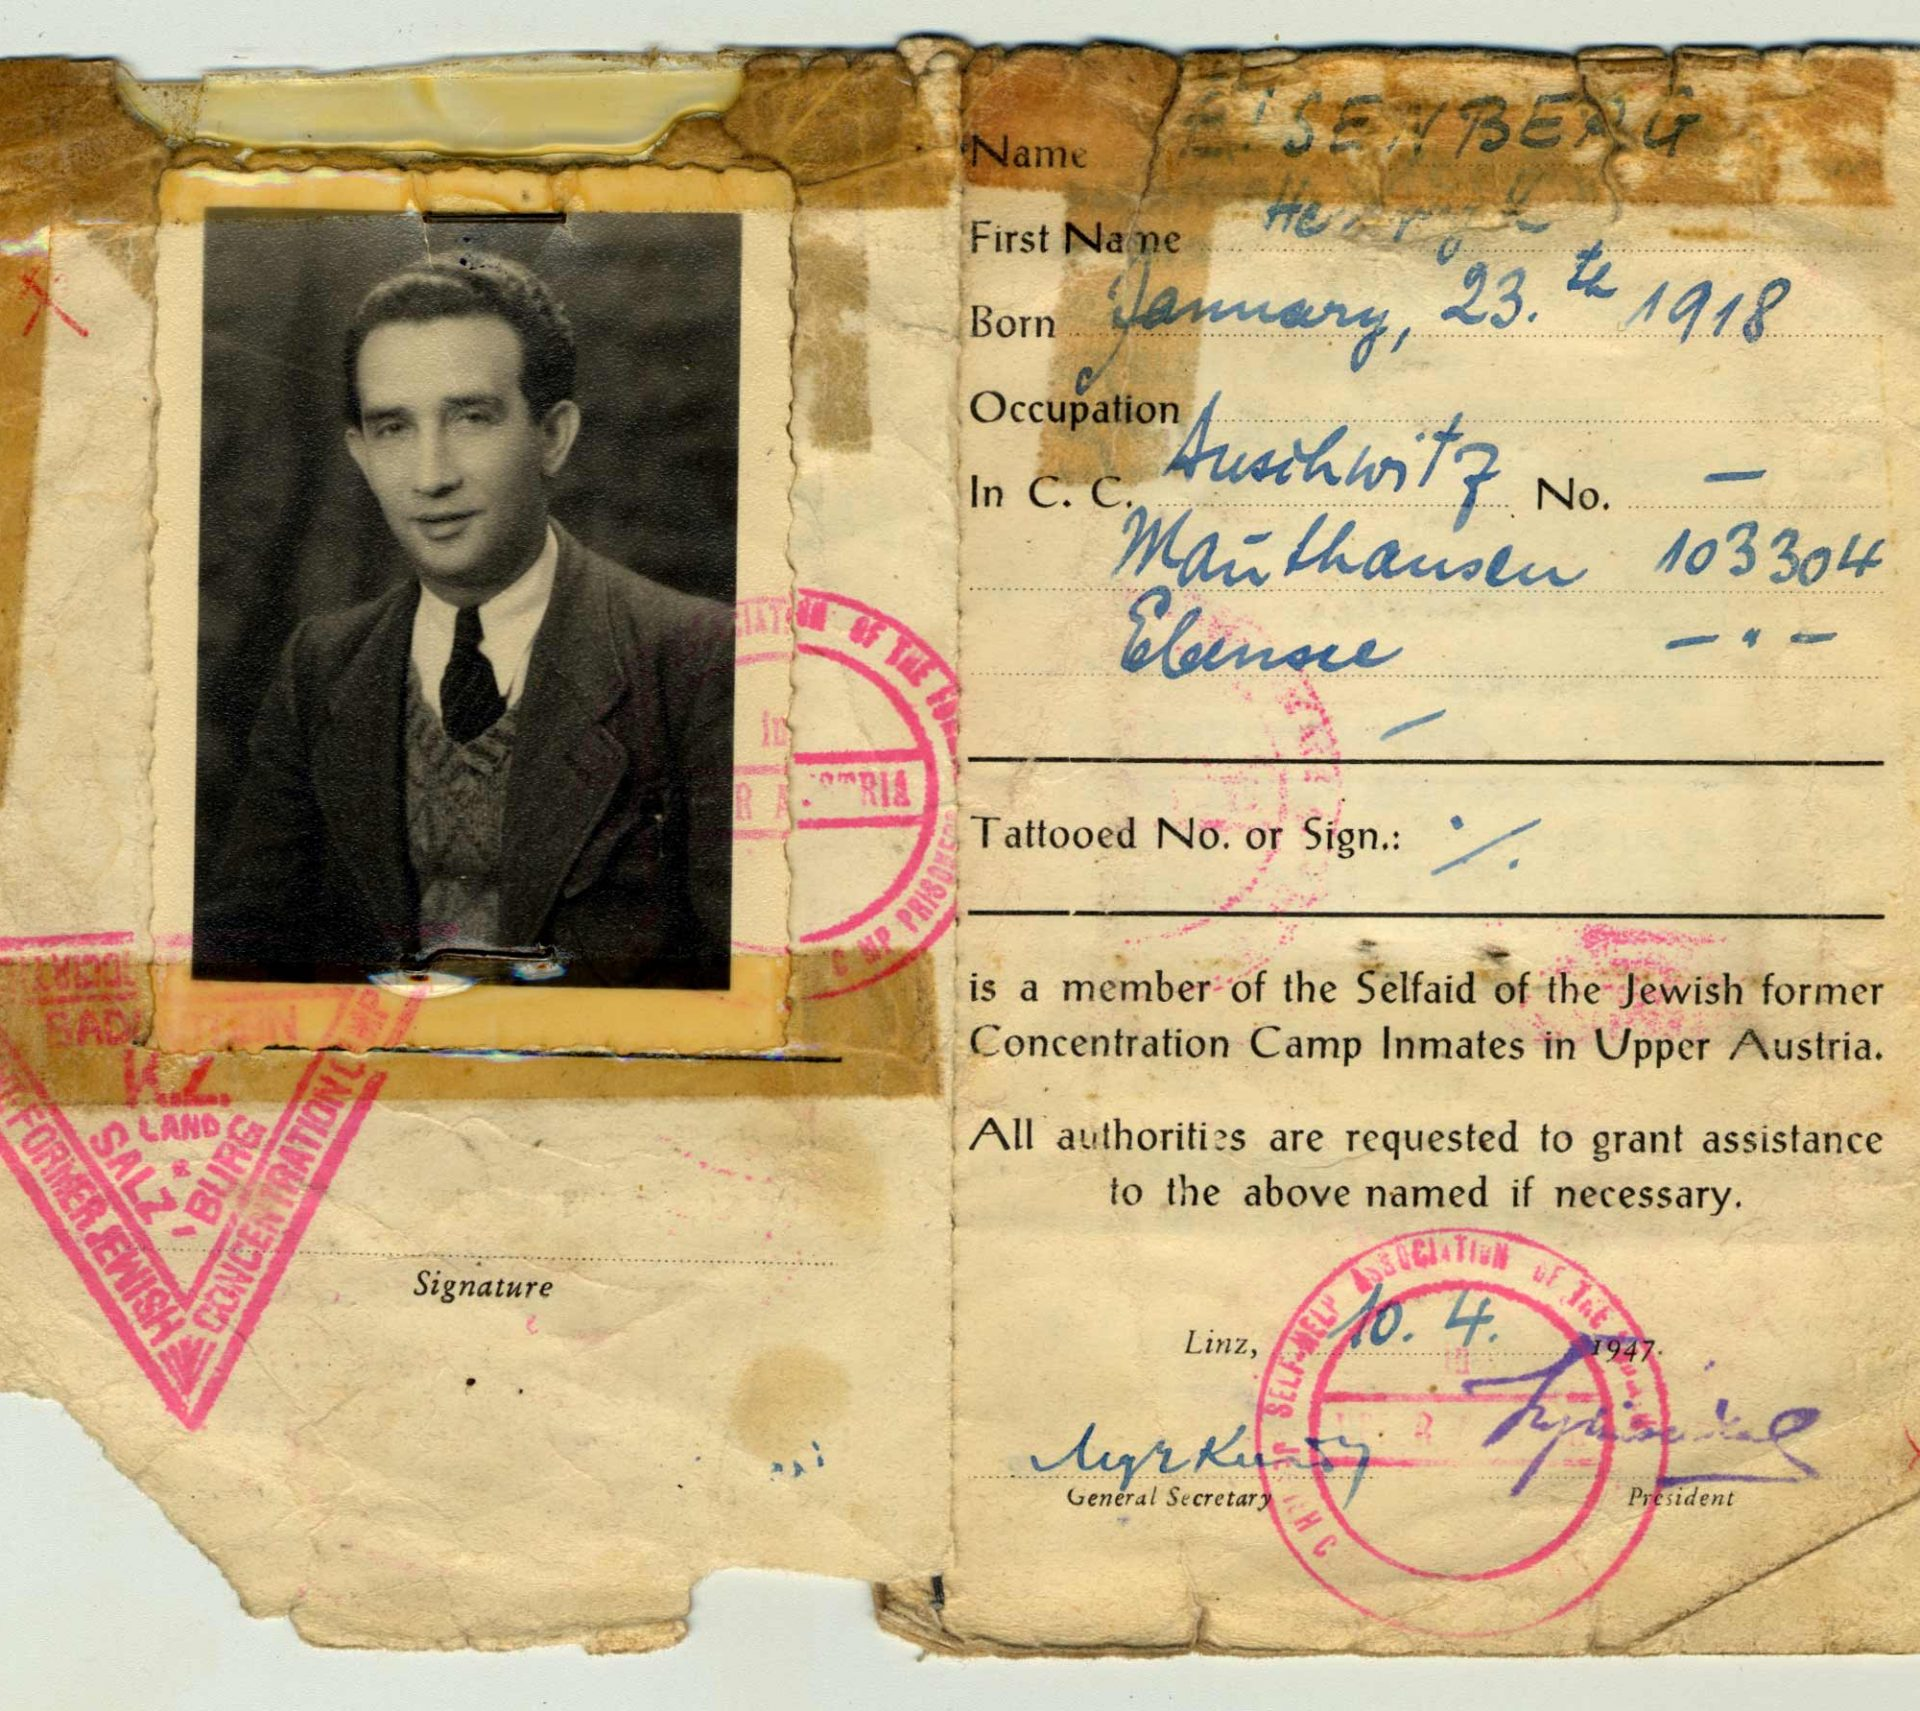 Henryk's identity card from an organisation that helped survivors from Austrian concentration camps.